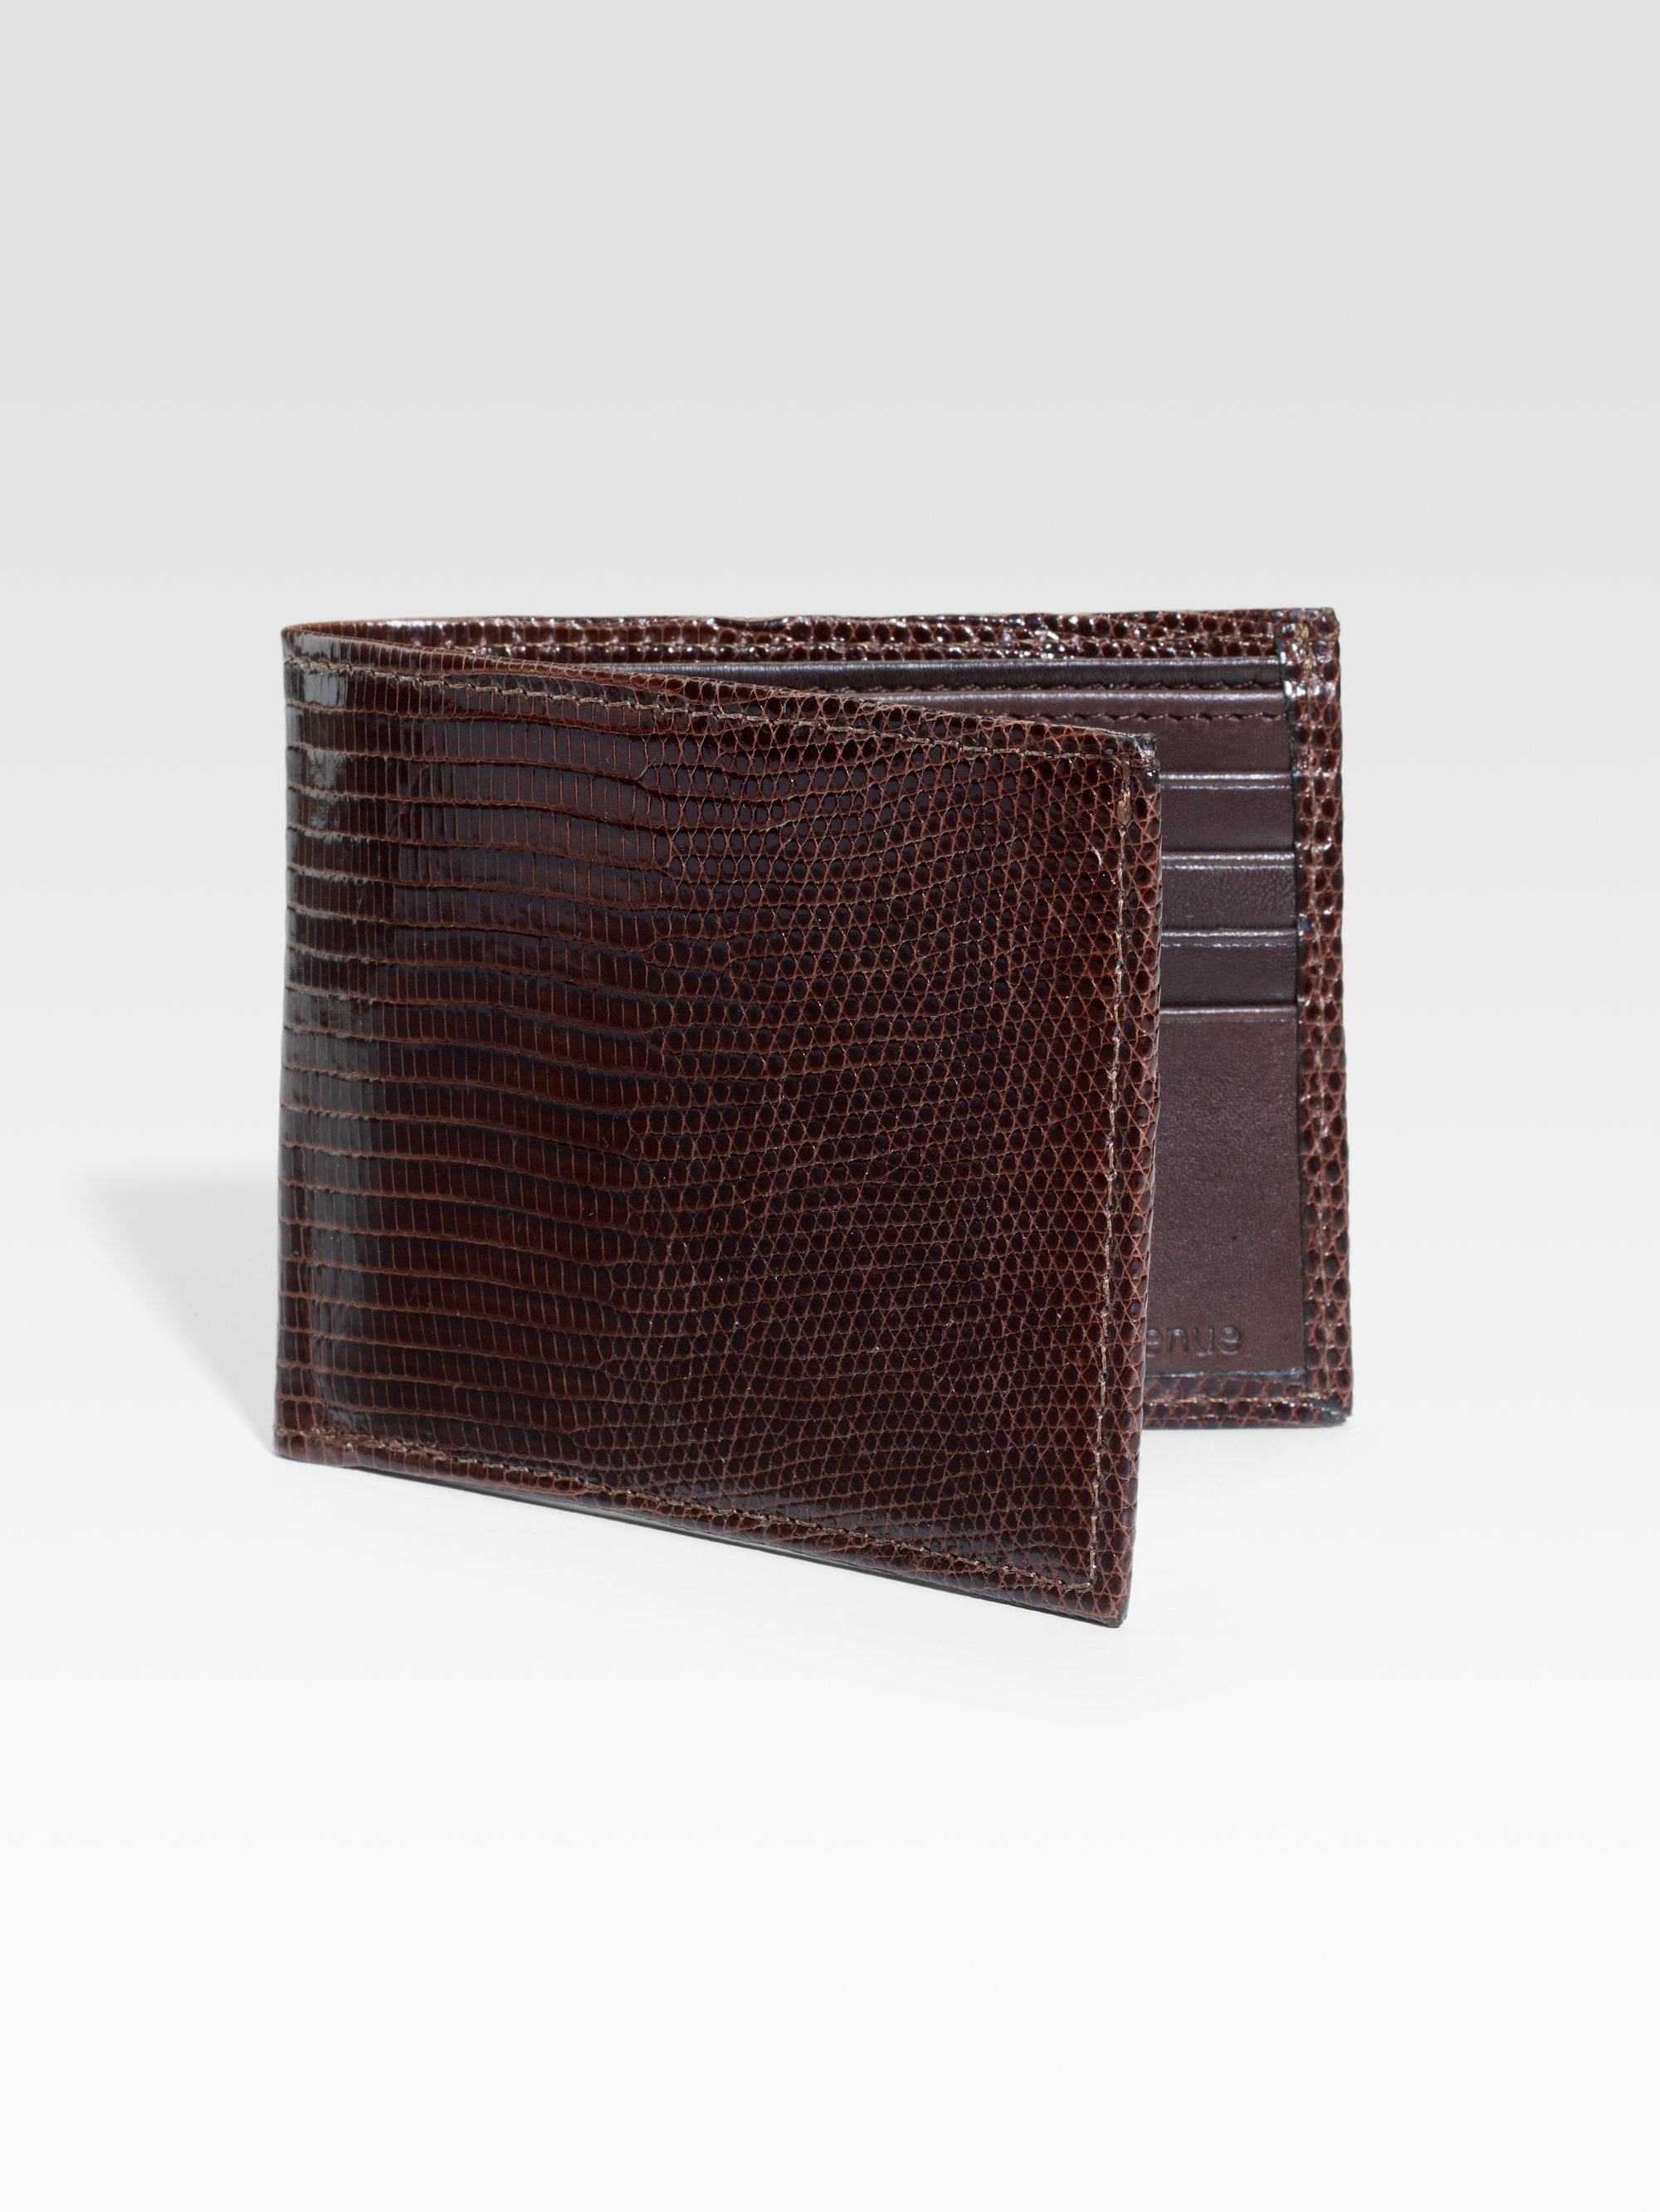 ... wallet 298 from saks fifth avenue free shipping with saks fifth avenue